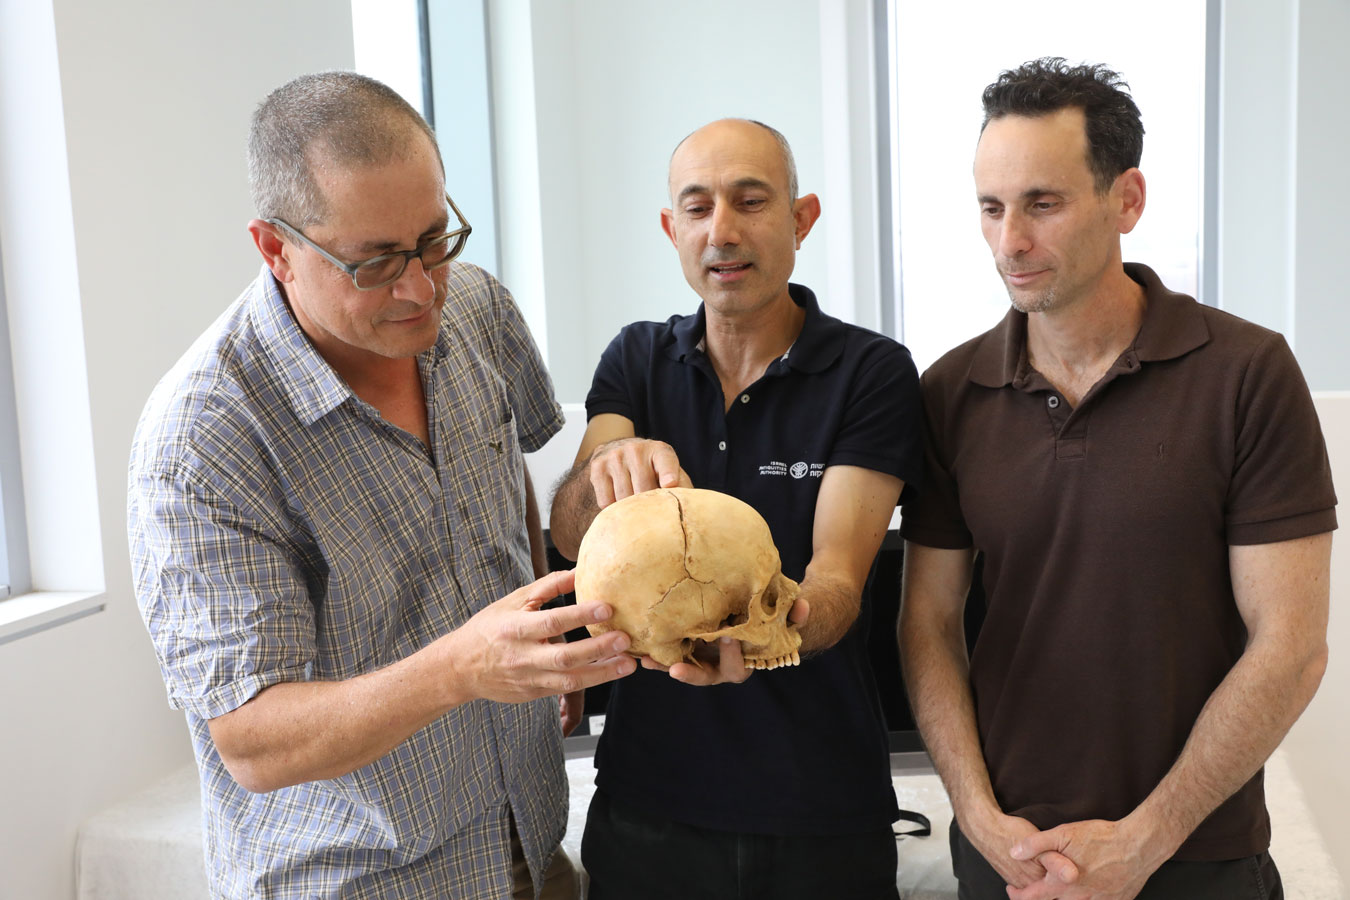 Professor Boaz Zisu, Dr. Nagar and Dr. Cohen with the fractured skull